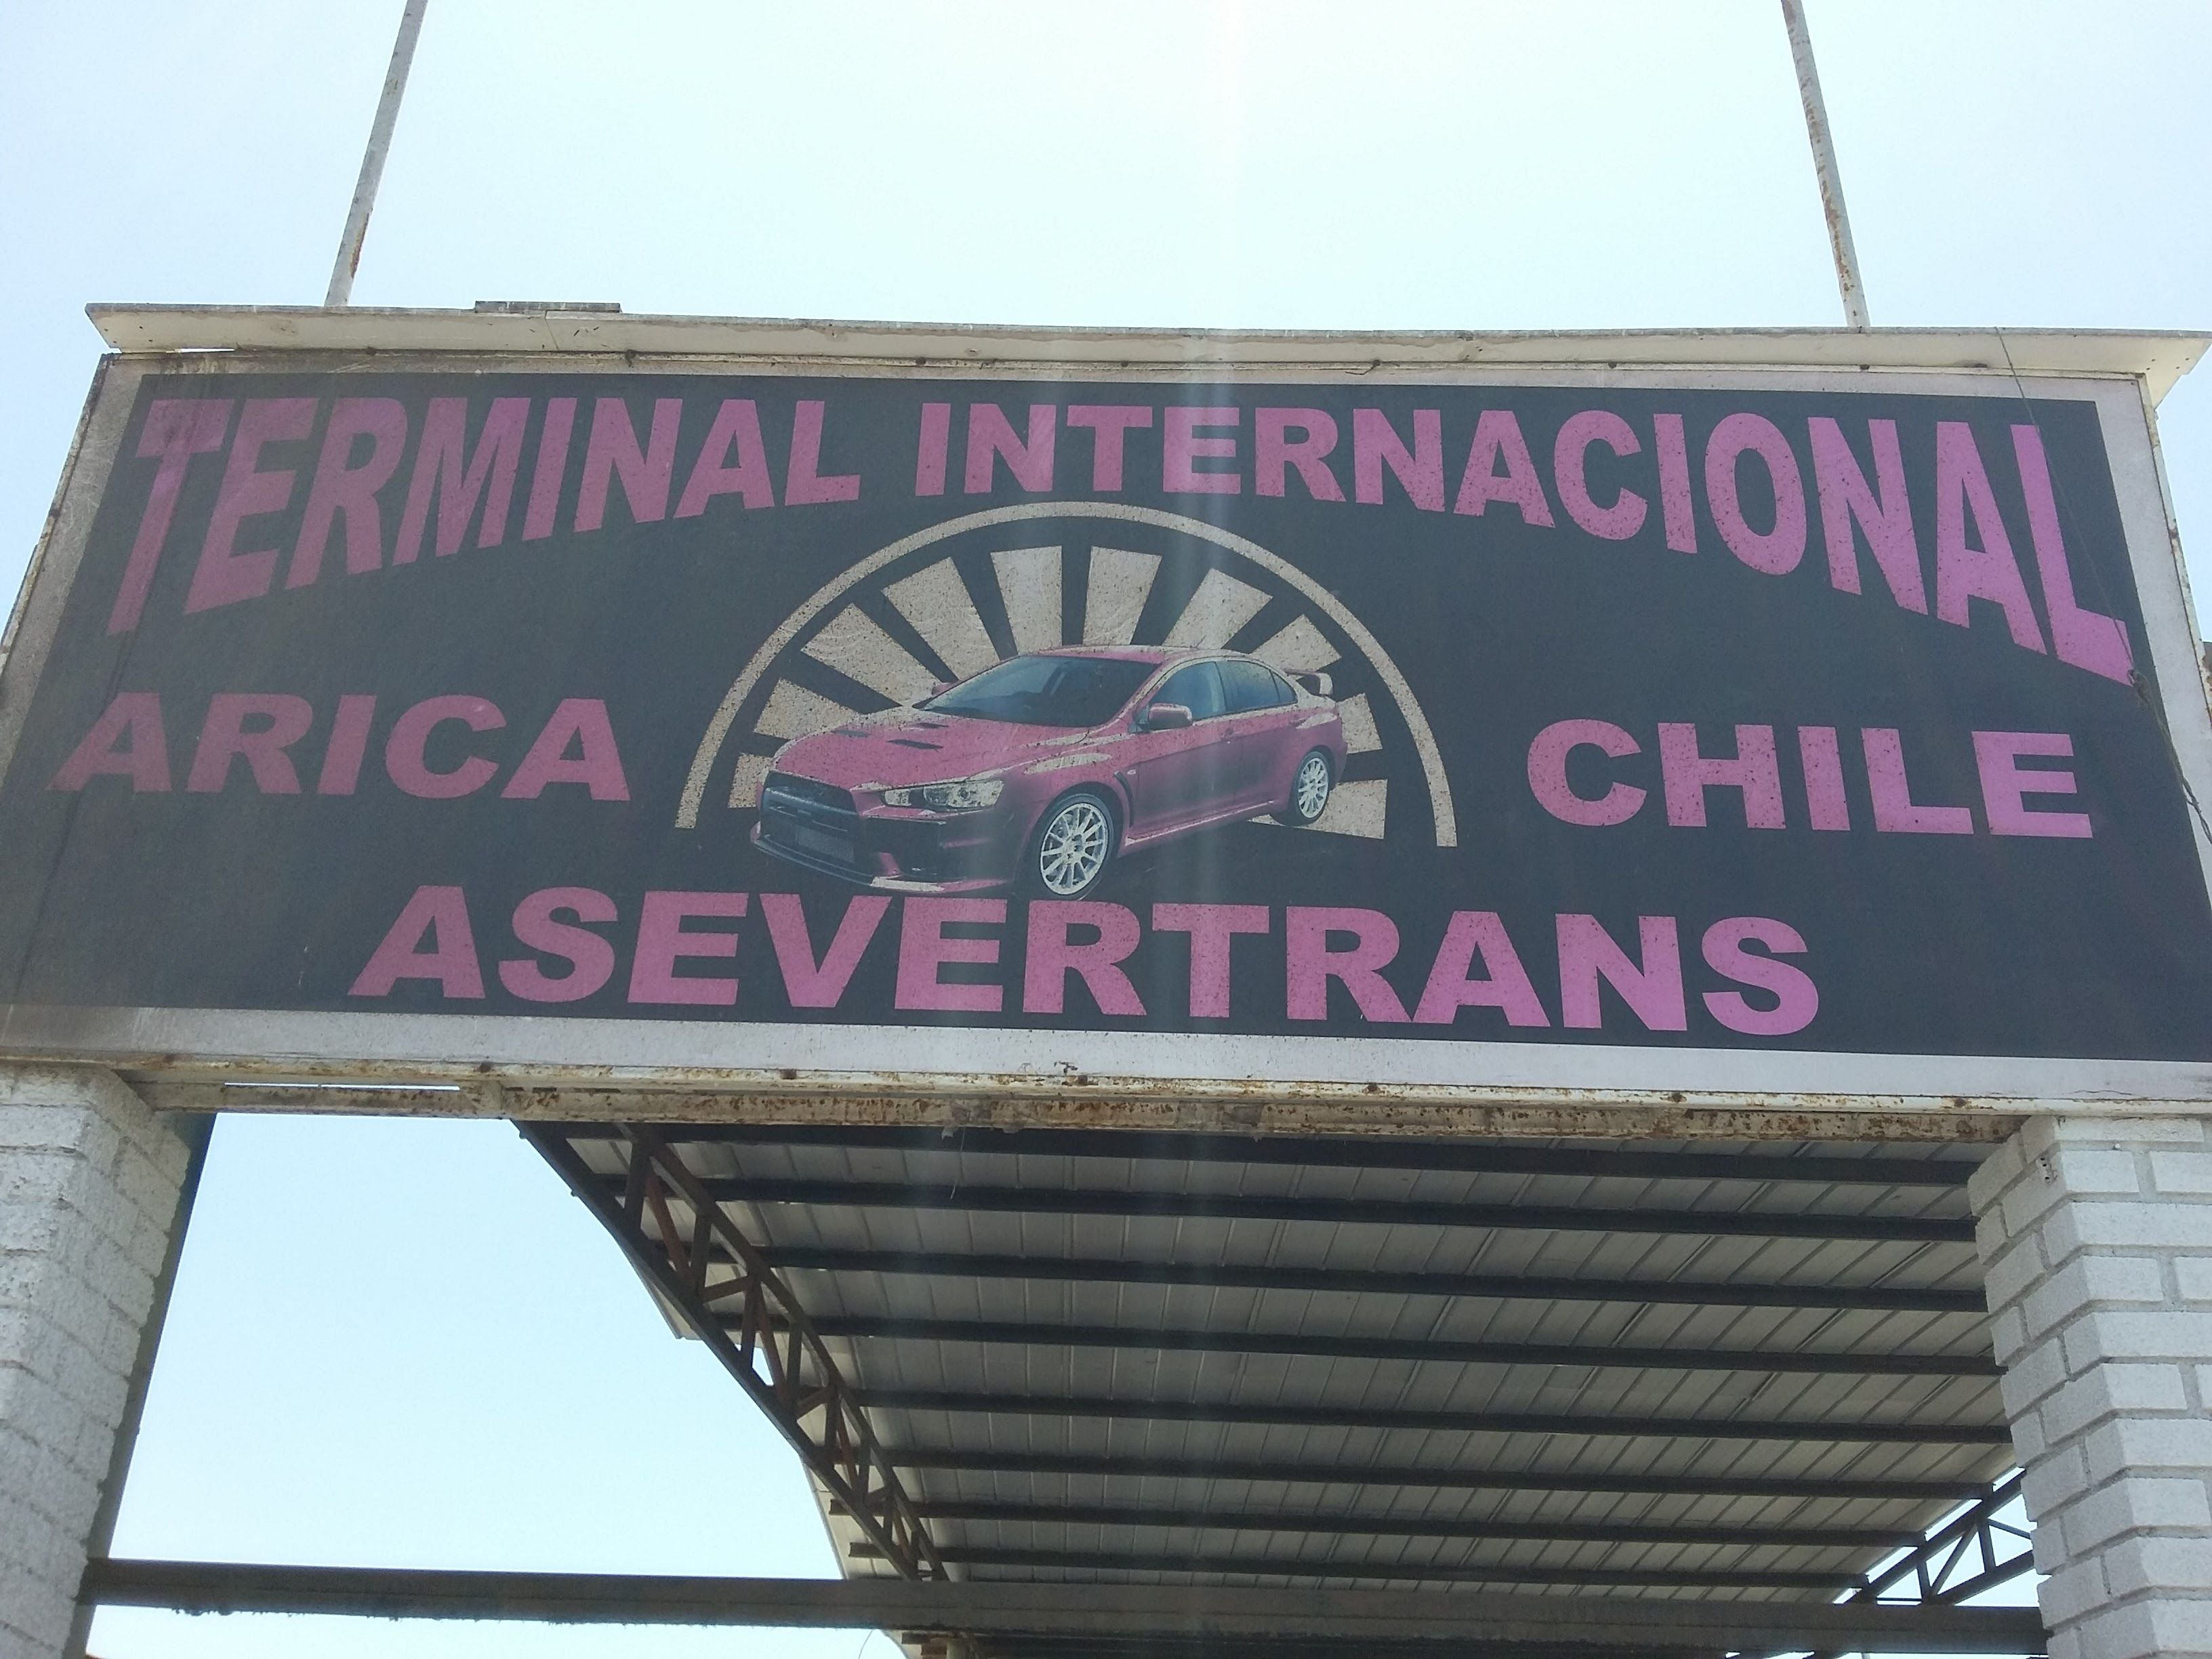 Signage in Terminal Internacional Arica-Chile